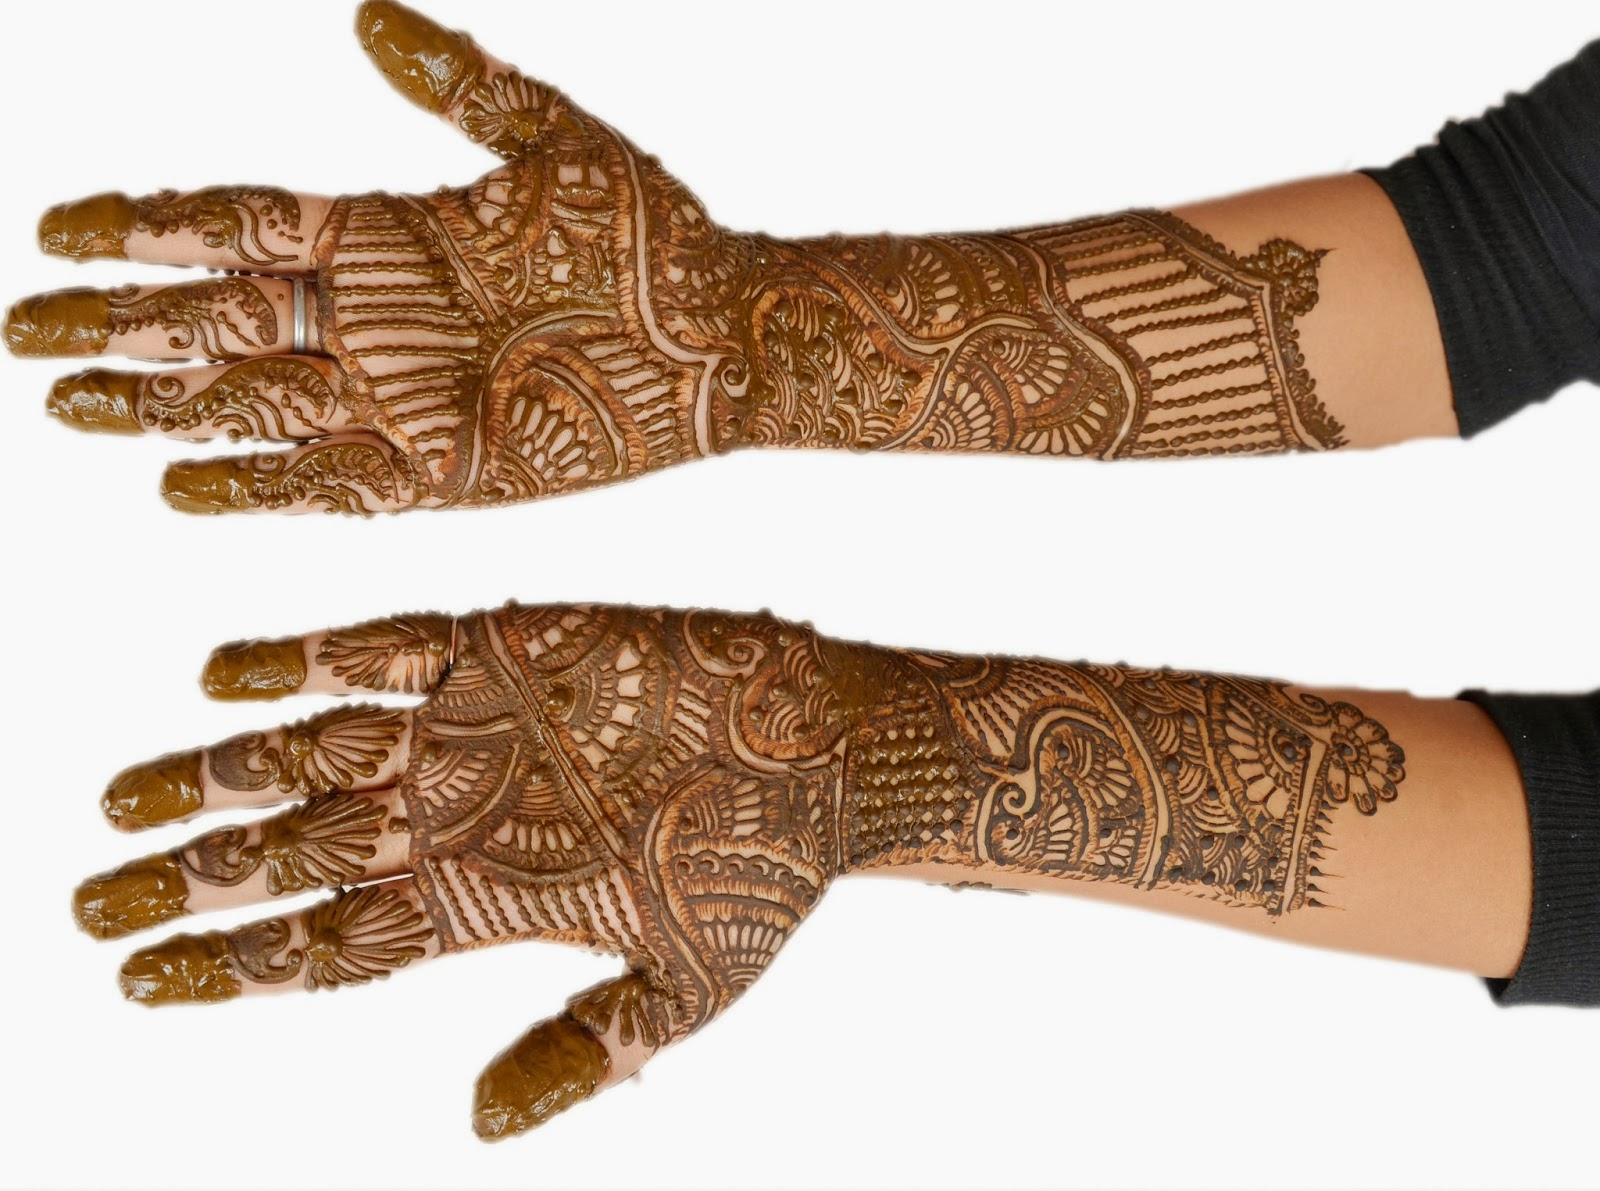 Indian mehndi designs for hands indian hand mehndi designs mehndi - Mehandi Designs For Full Hands Patterns Images Book For Hand Dresses For Kids Images Flowers Arabic On Paper Balck And White Simple